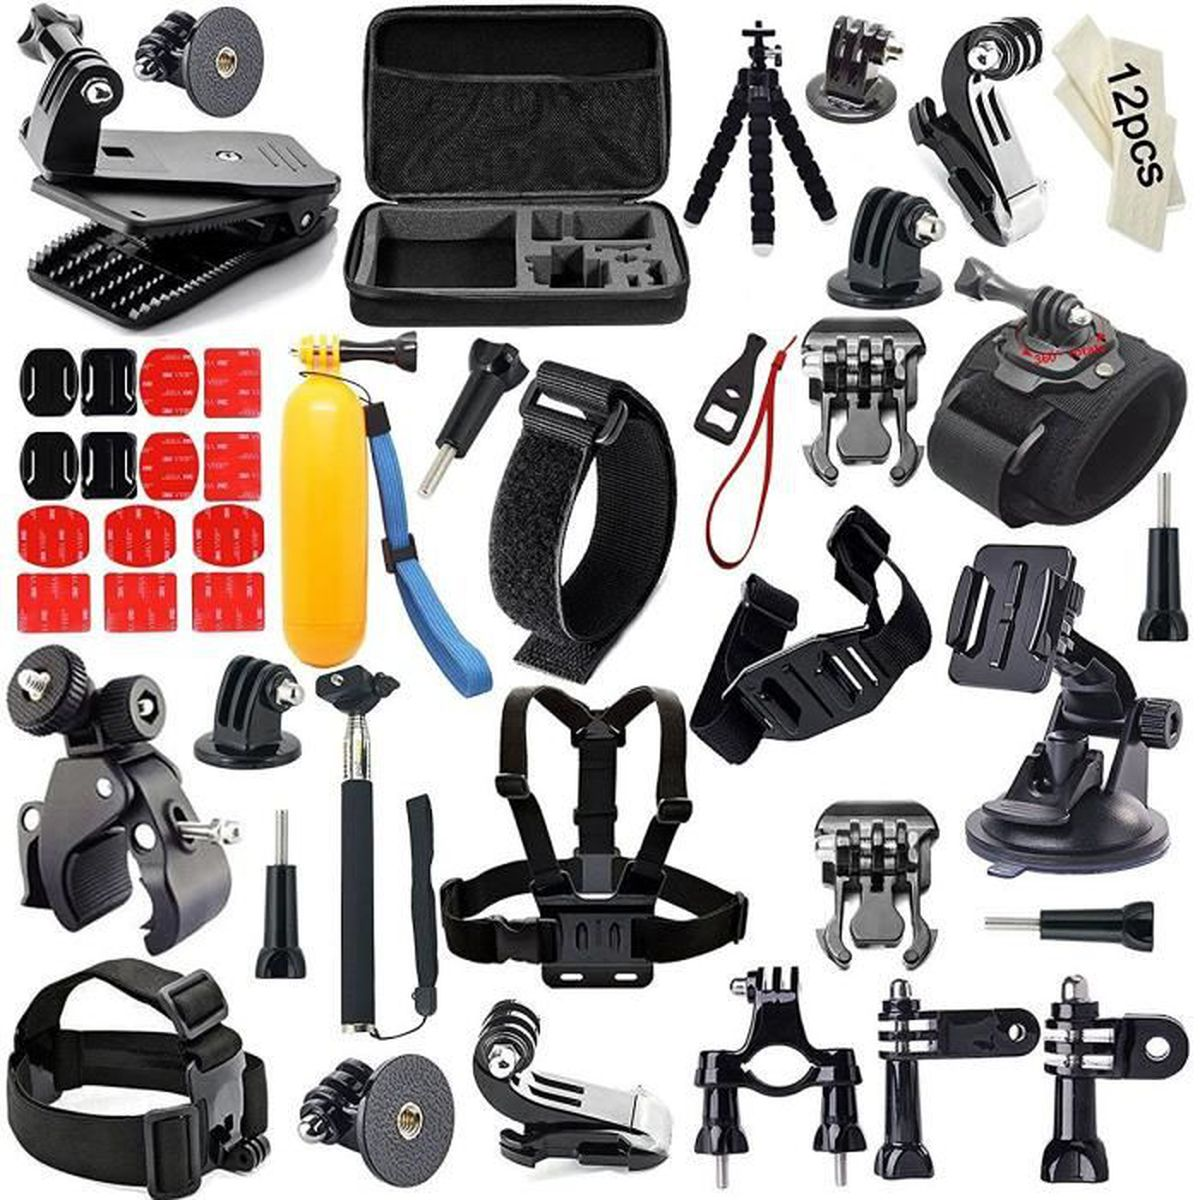 iextreme 55 en 1 kit d 39 accessoires pour gopro hero 5 4 3 2. Black Bedroom Furniture Sets. Home Design Ideas